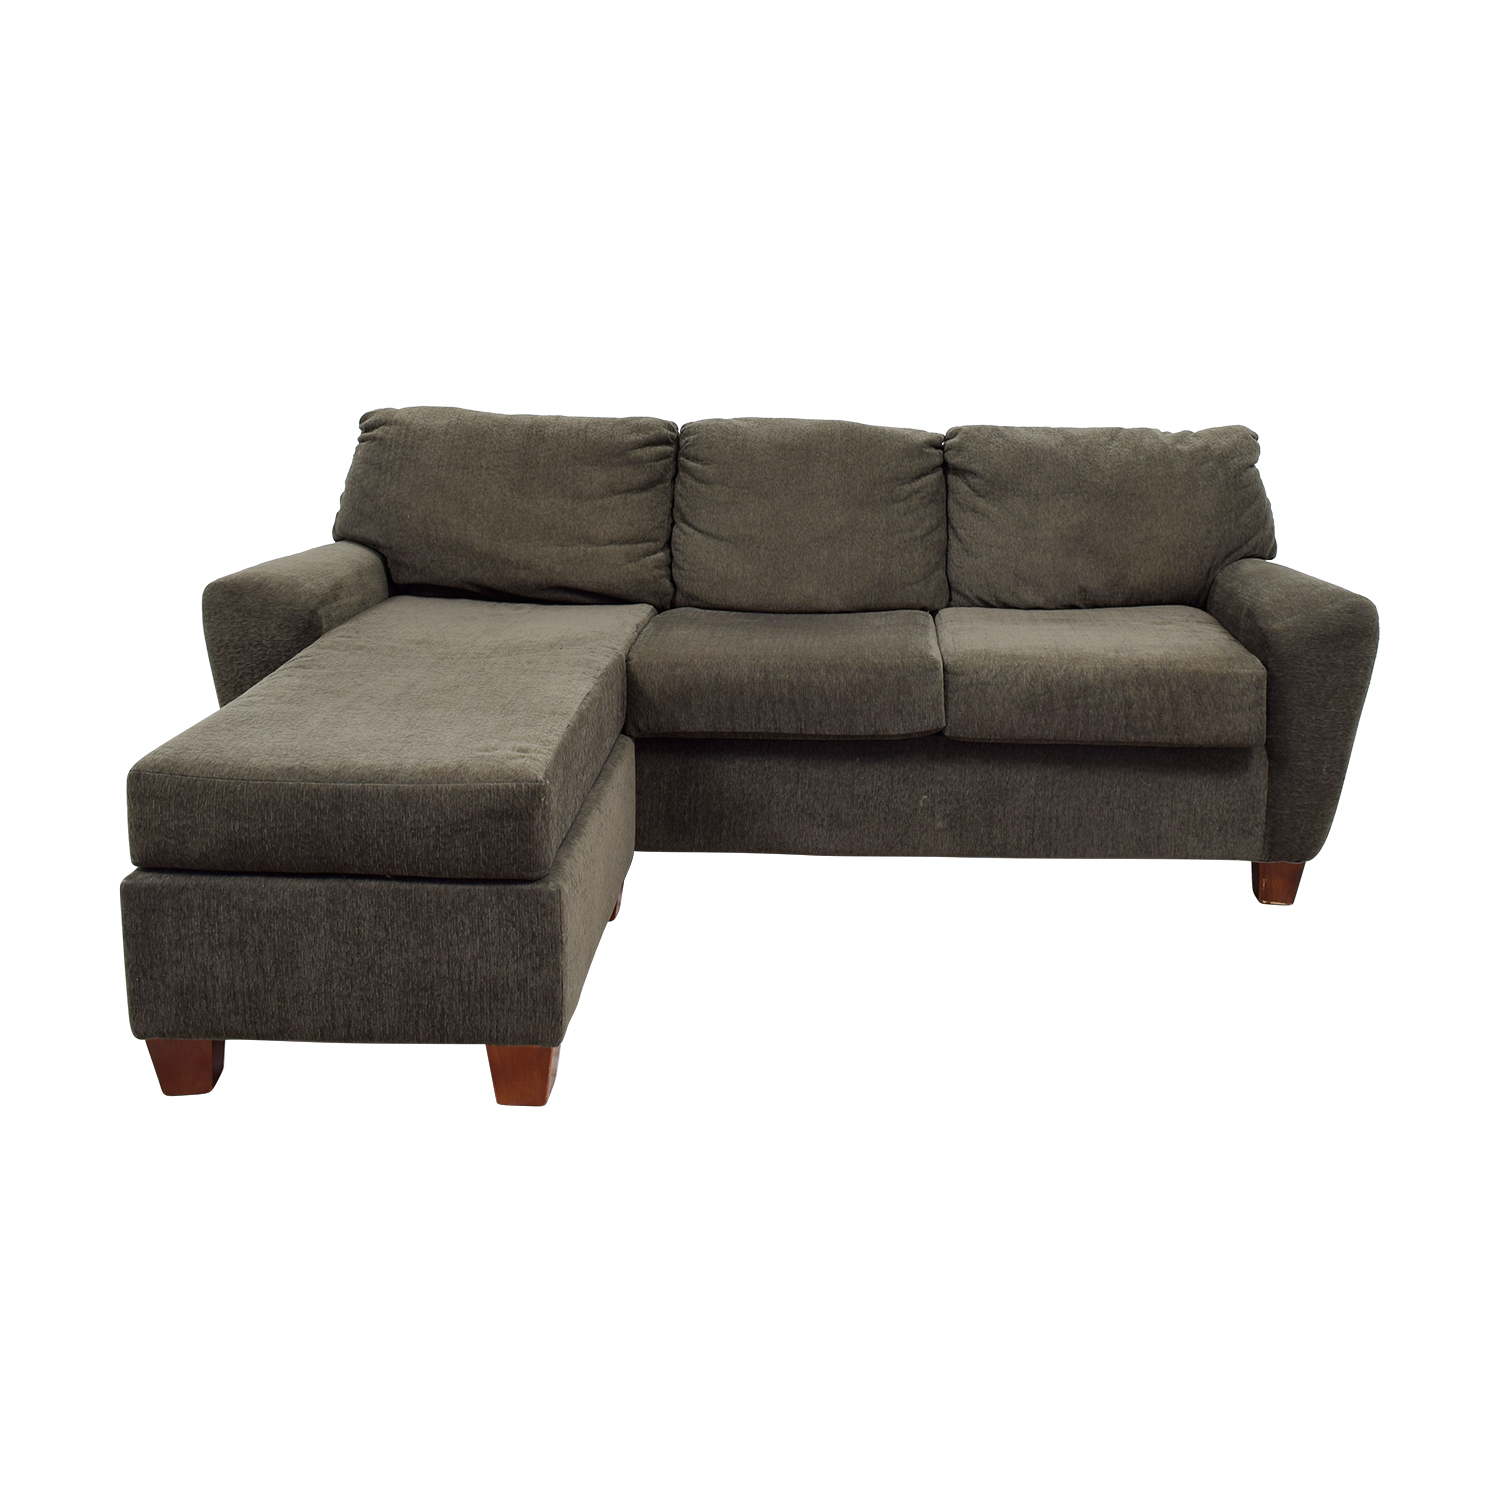 70 off west elm west elm l shape grey sofa sofas for Best west elm sofa